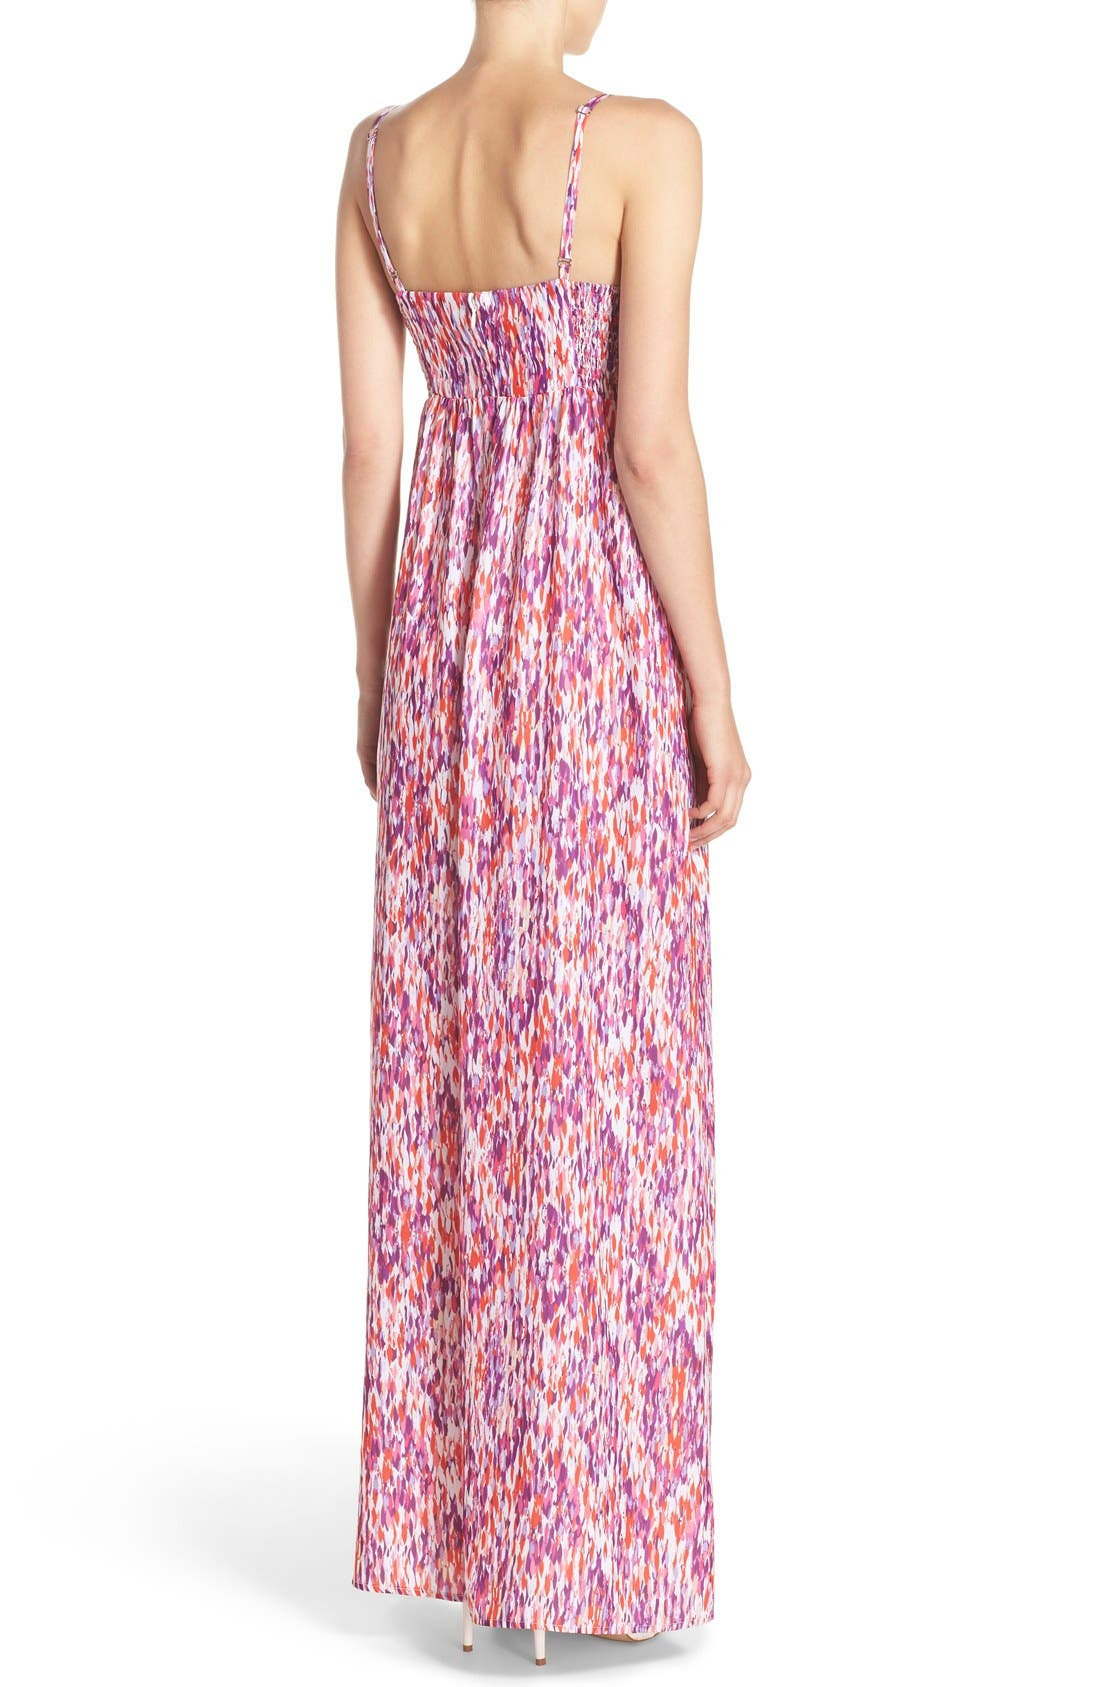 Alternate Image 3  - Felicity & Coco Colby Woven Maxi Dress (Regular & Petite) (Nordstrom Exclusive)